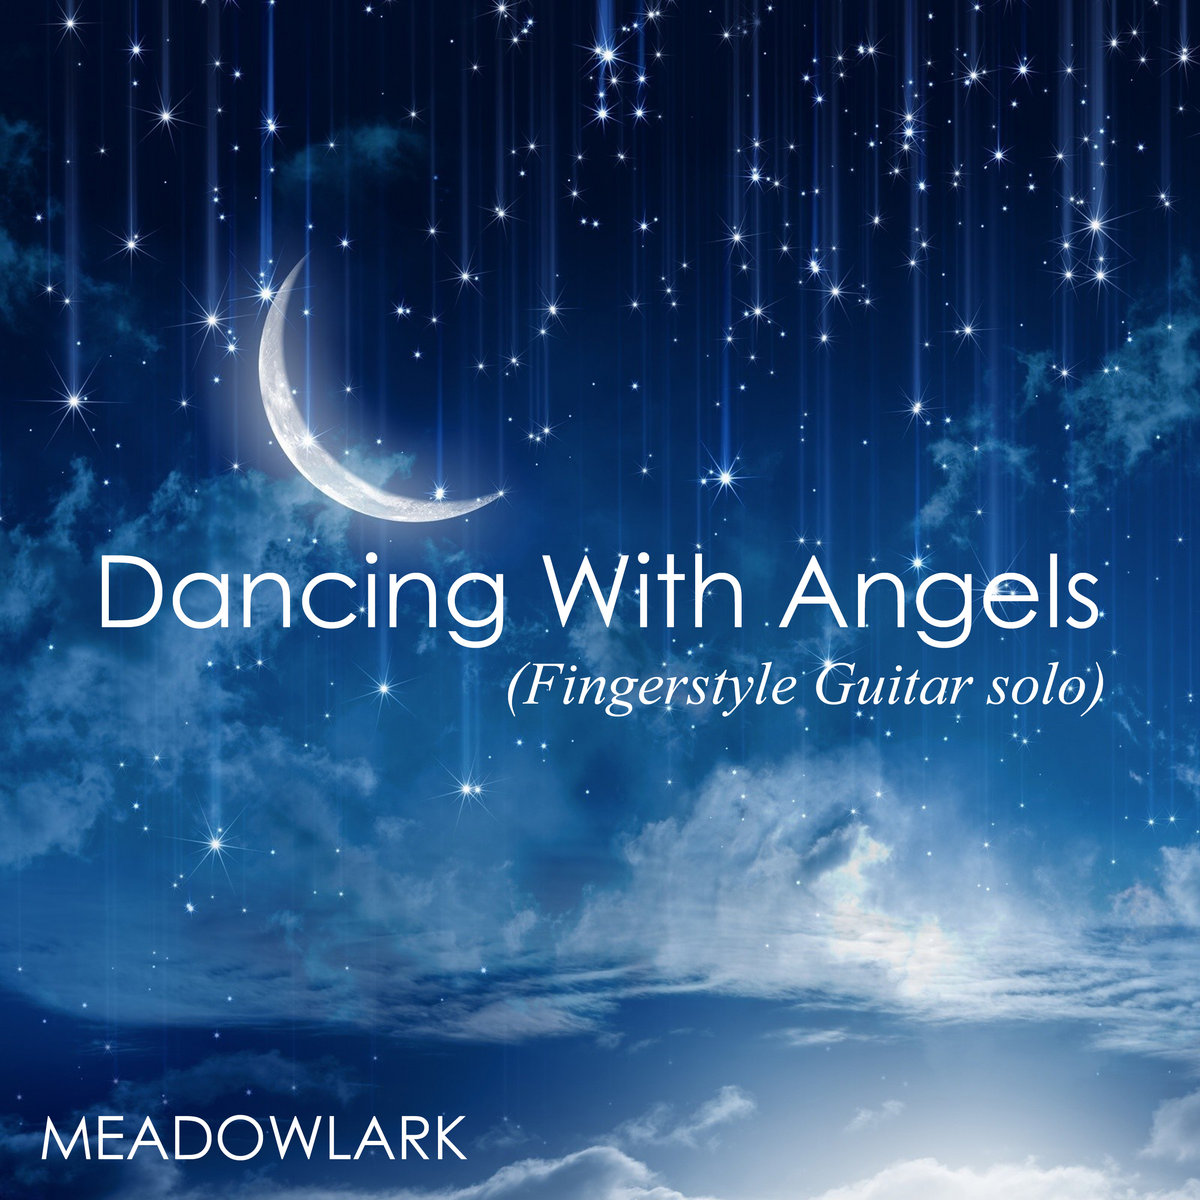 Dancing with Angels (Fingerstyle Guitar Solo) [single] by featuring Fingerstyle Guitarist Rick Cyge